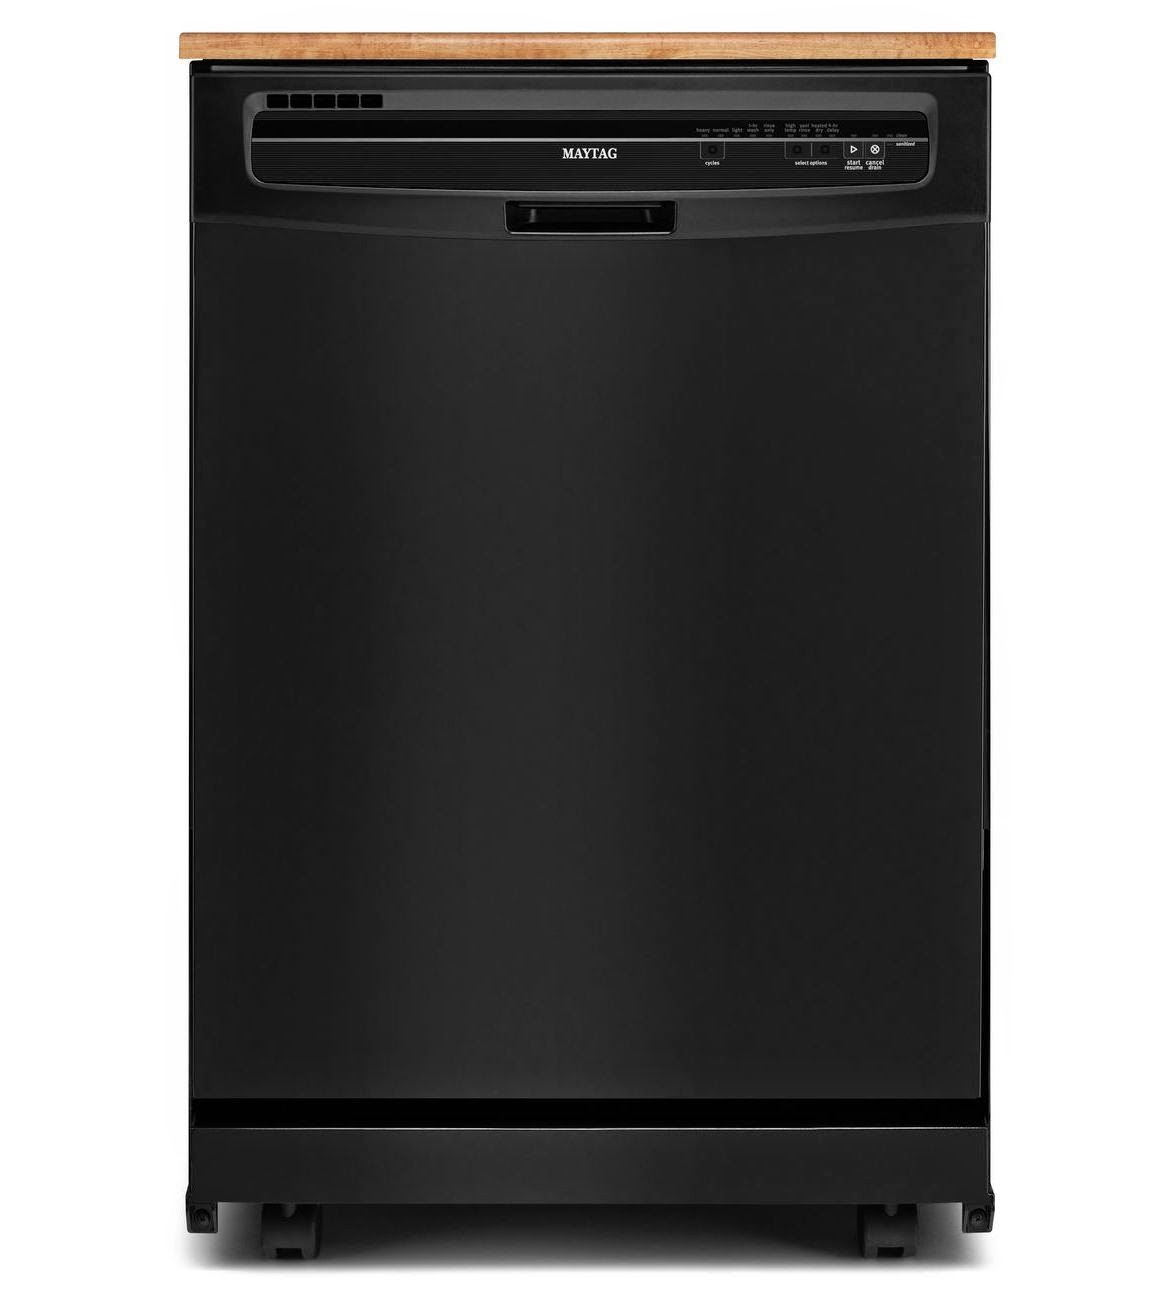 Maytag Portable Dishwasher MDC4809PAB